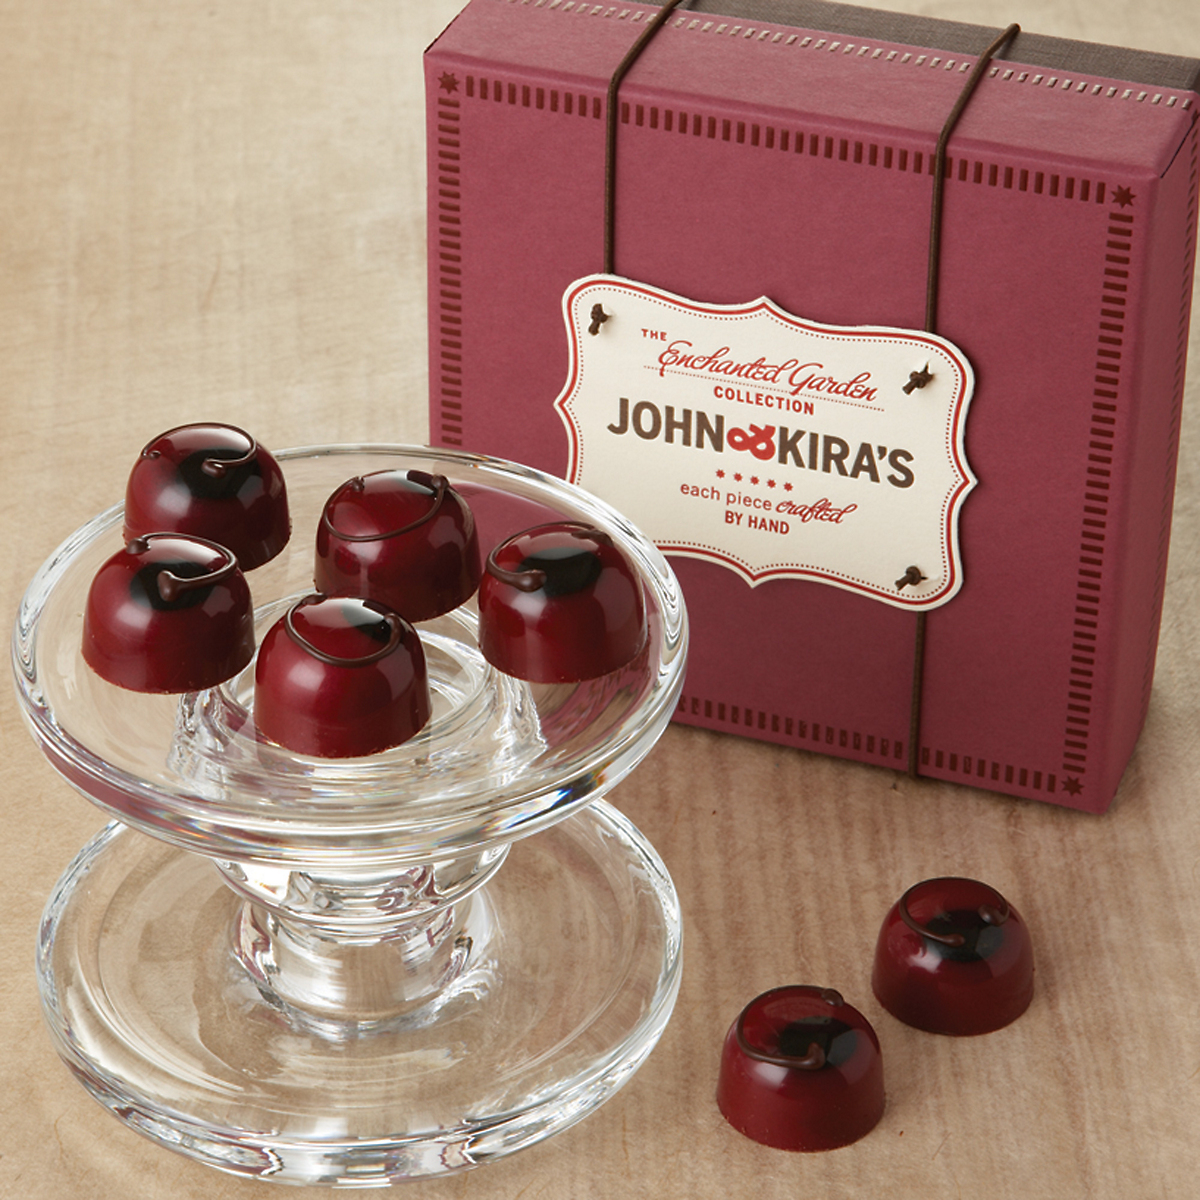 John & Kira's Dark Chocolate Cherries